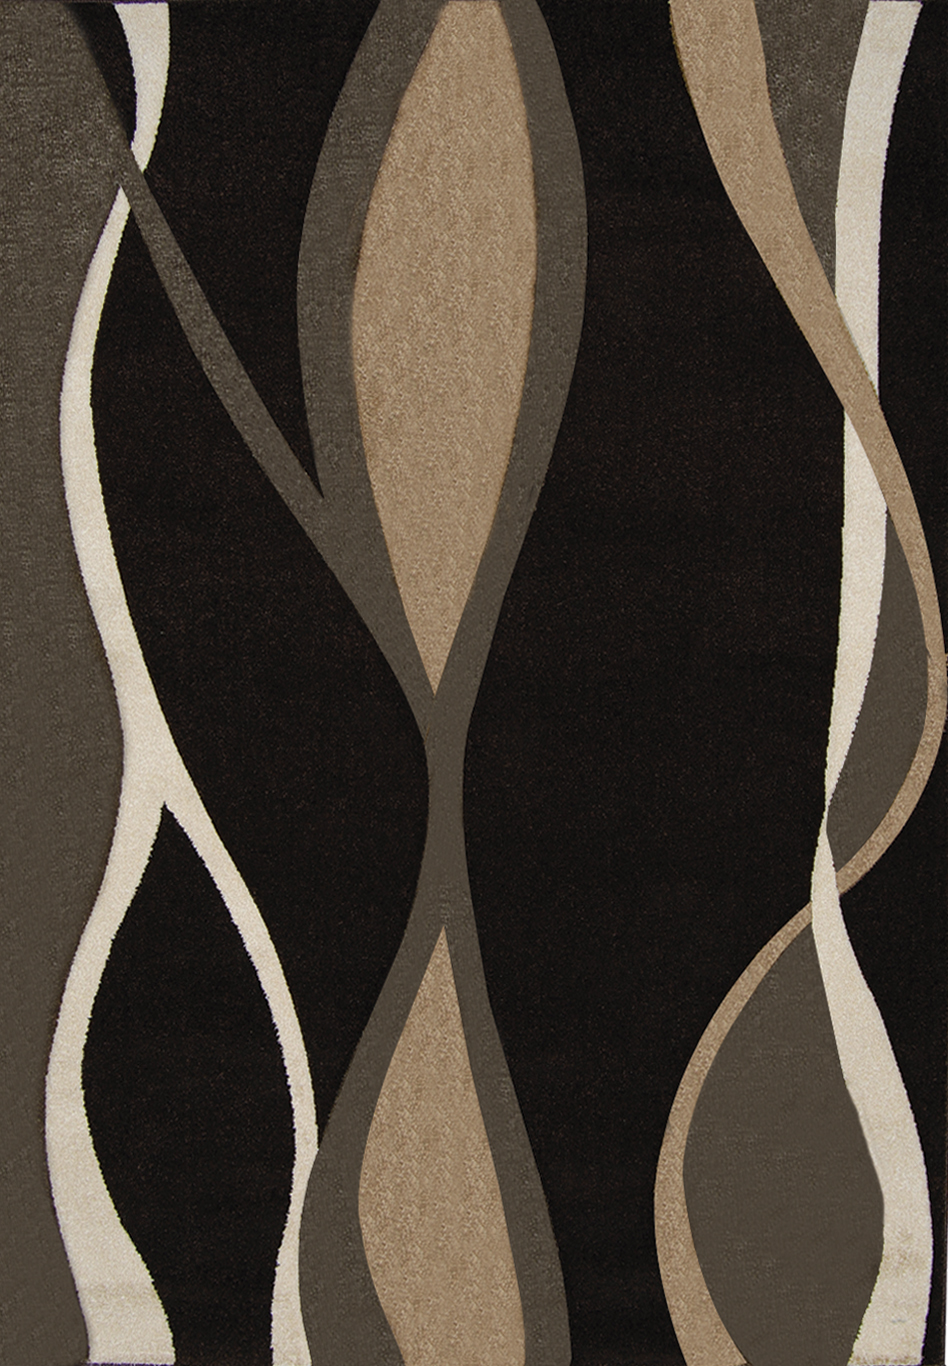 Home Dynamix Sumatra Area Rug 8559D-514 Dark Brown Stripes Lines at Sears.com